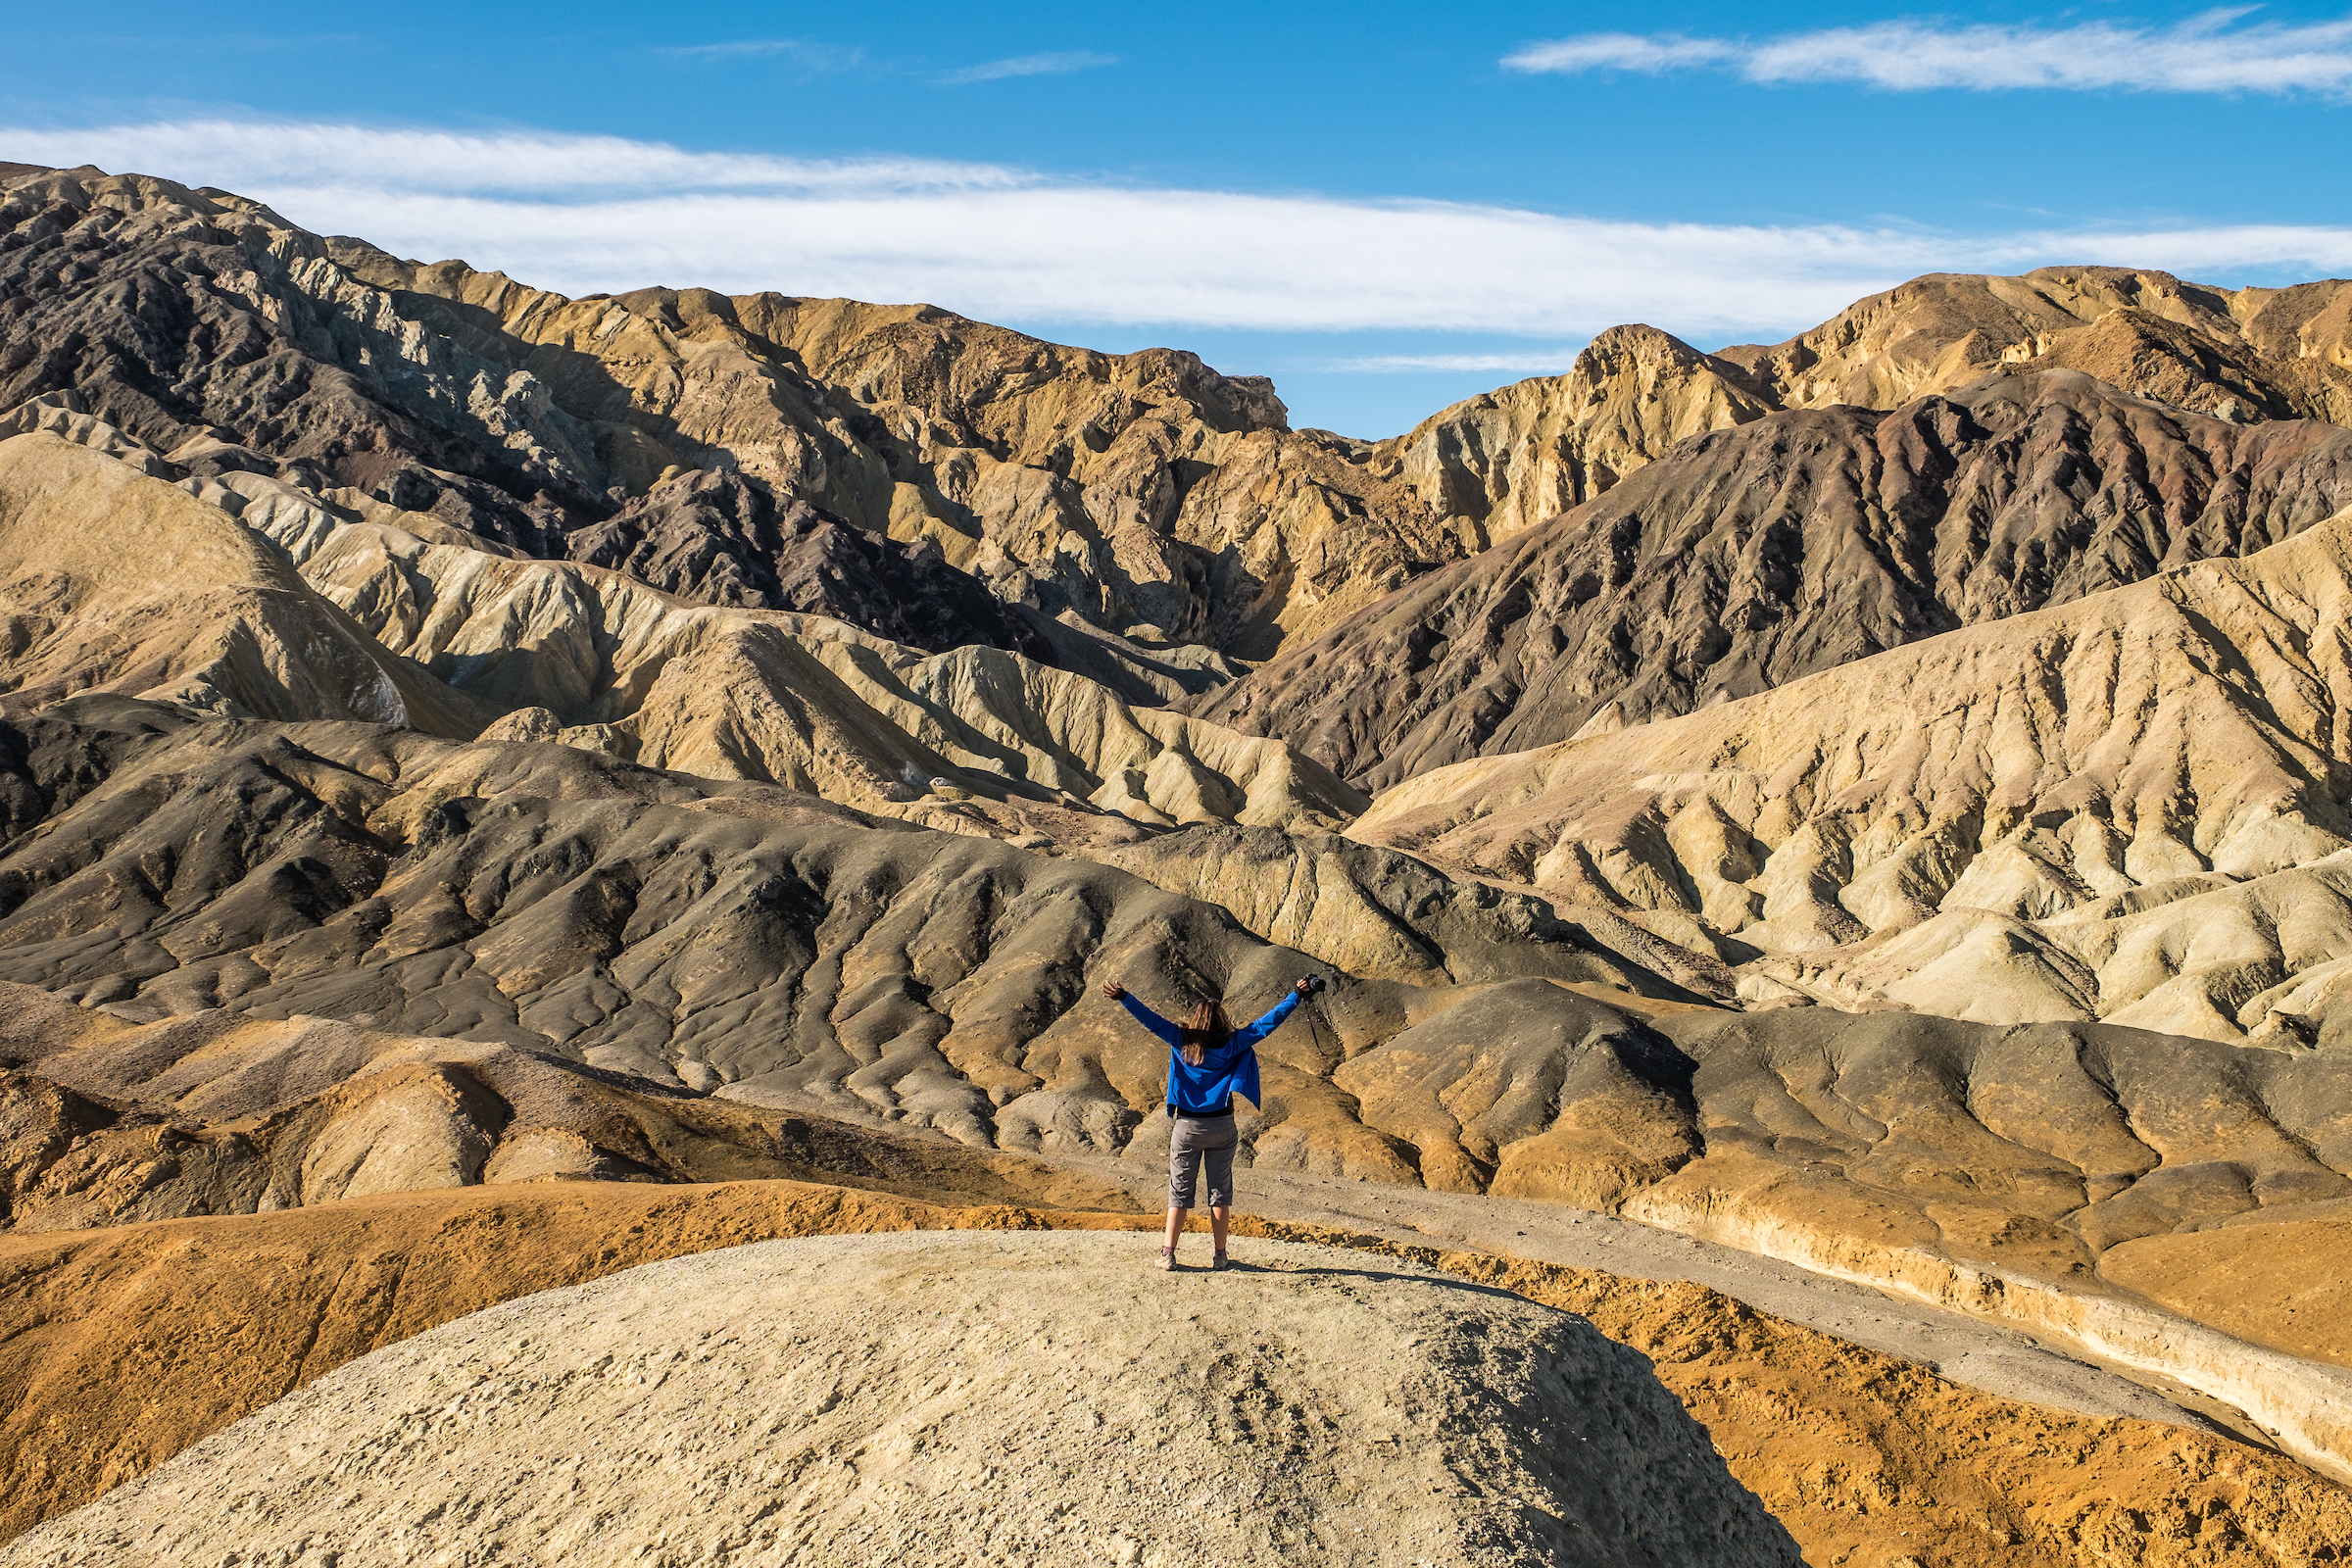 At Zabriskie Point in Death Valley National Park in California/Nevada